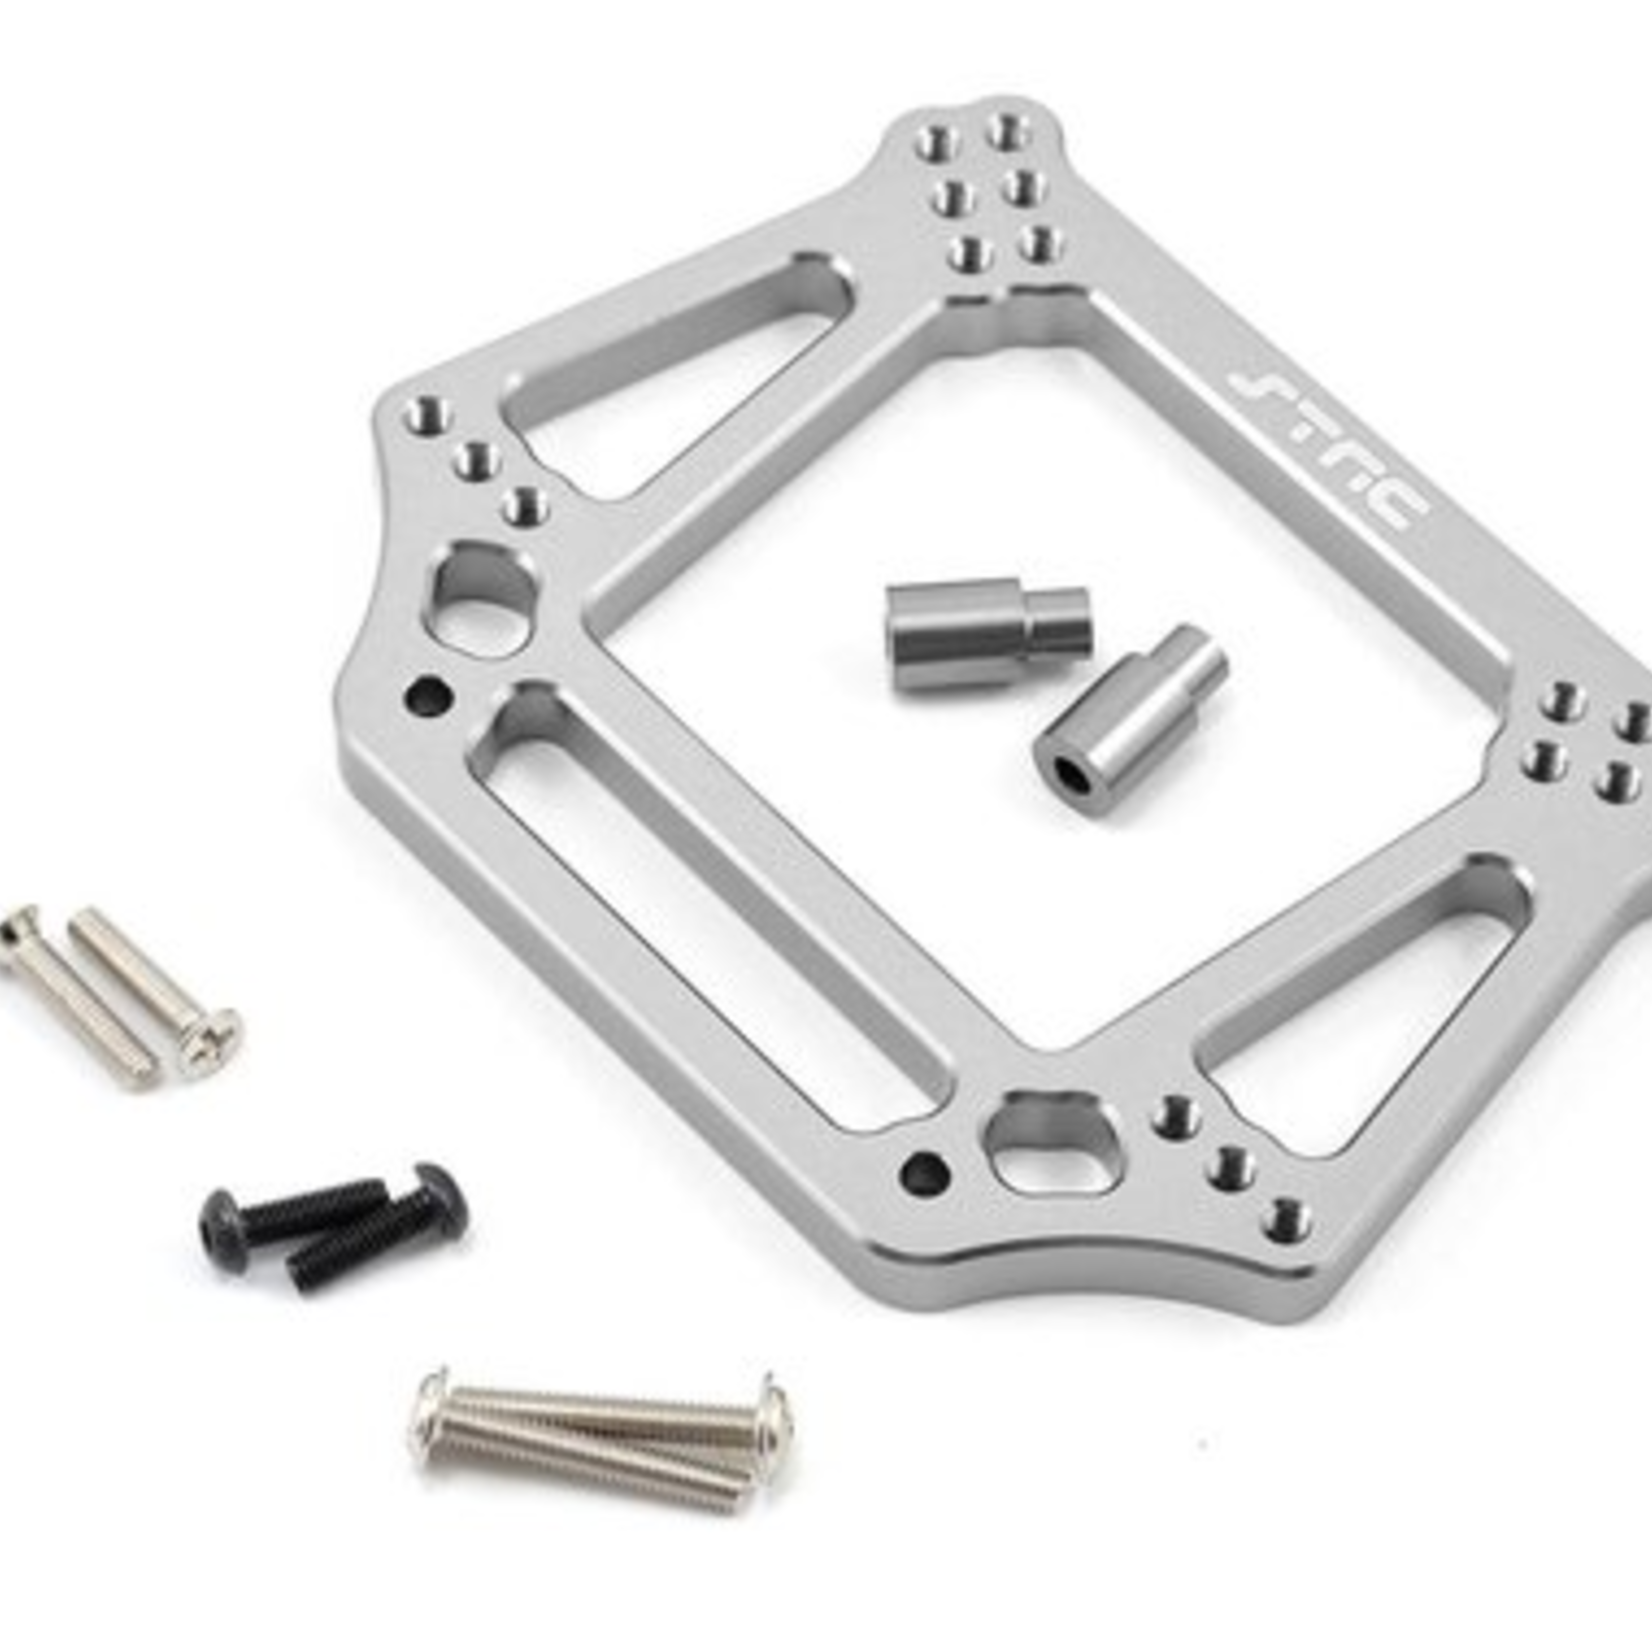 ST Racing Concepts SPTST3639S ST Racing Concepts Aluminum 6mm Heavy Duty Front Shock Tower for Traxxas Stampede/Rustler/Bandit/Slash (Silver)